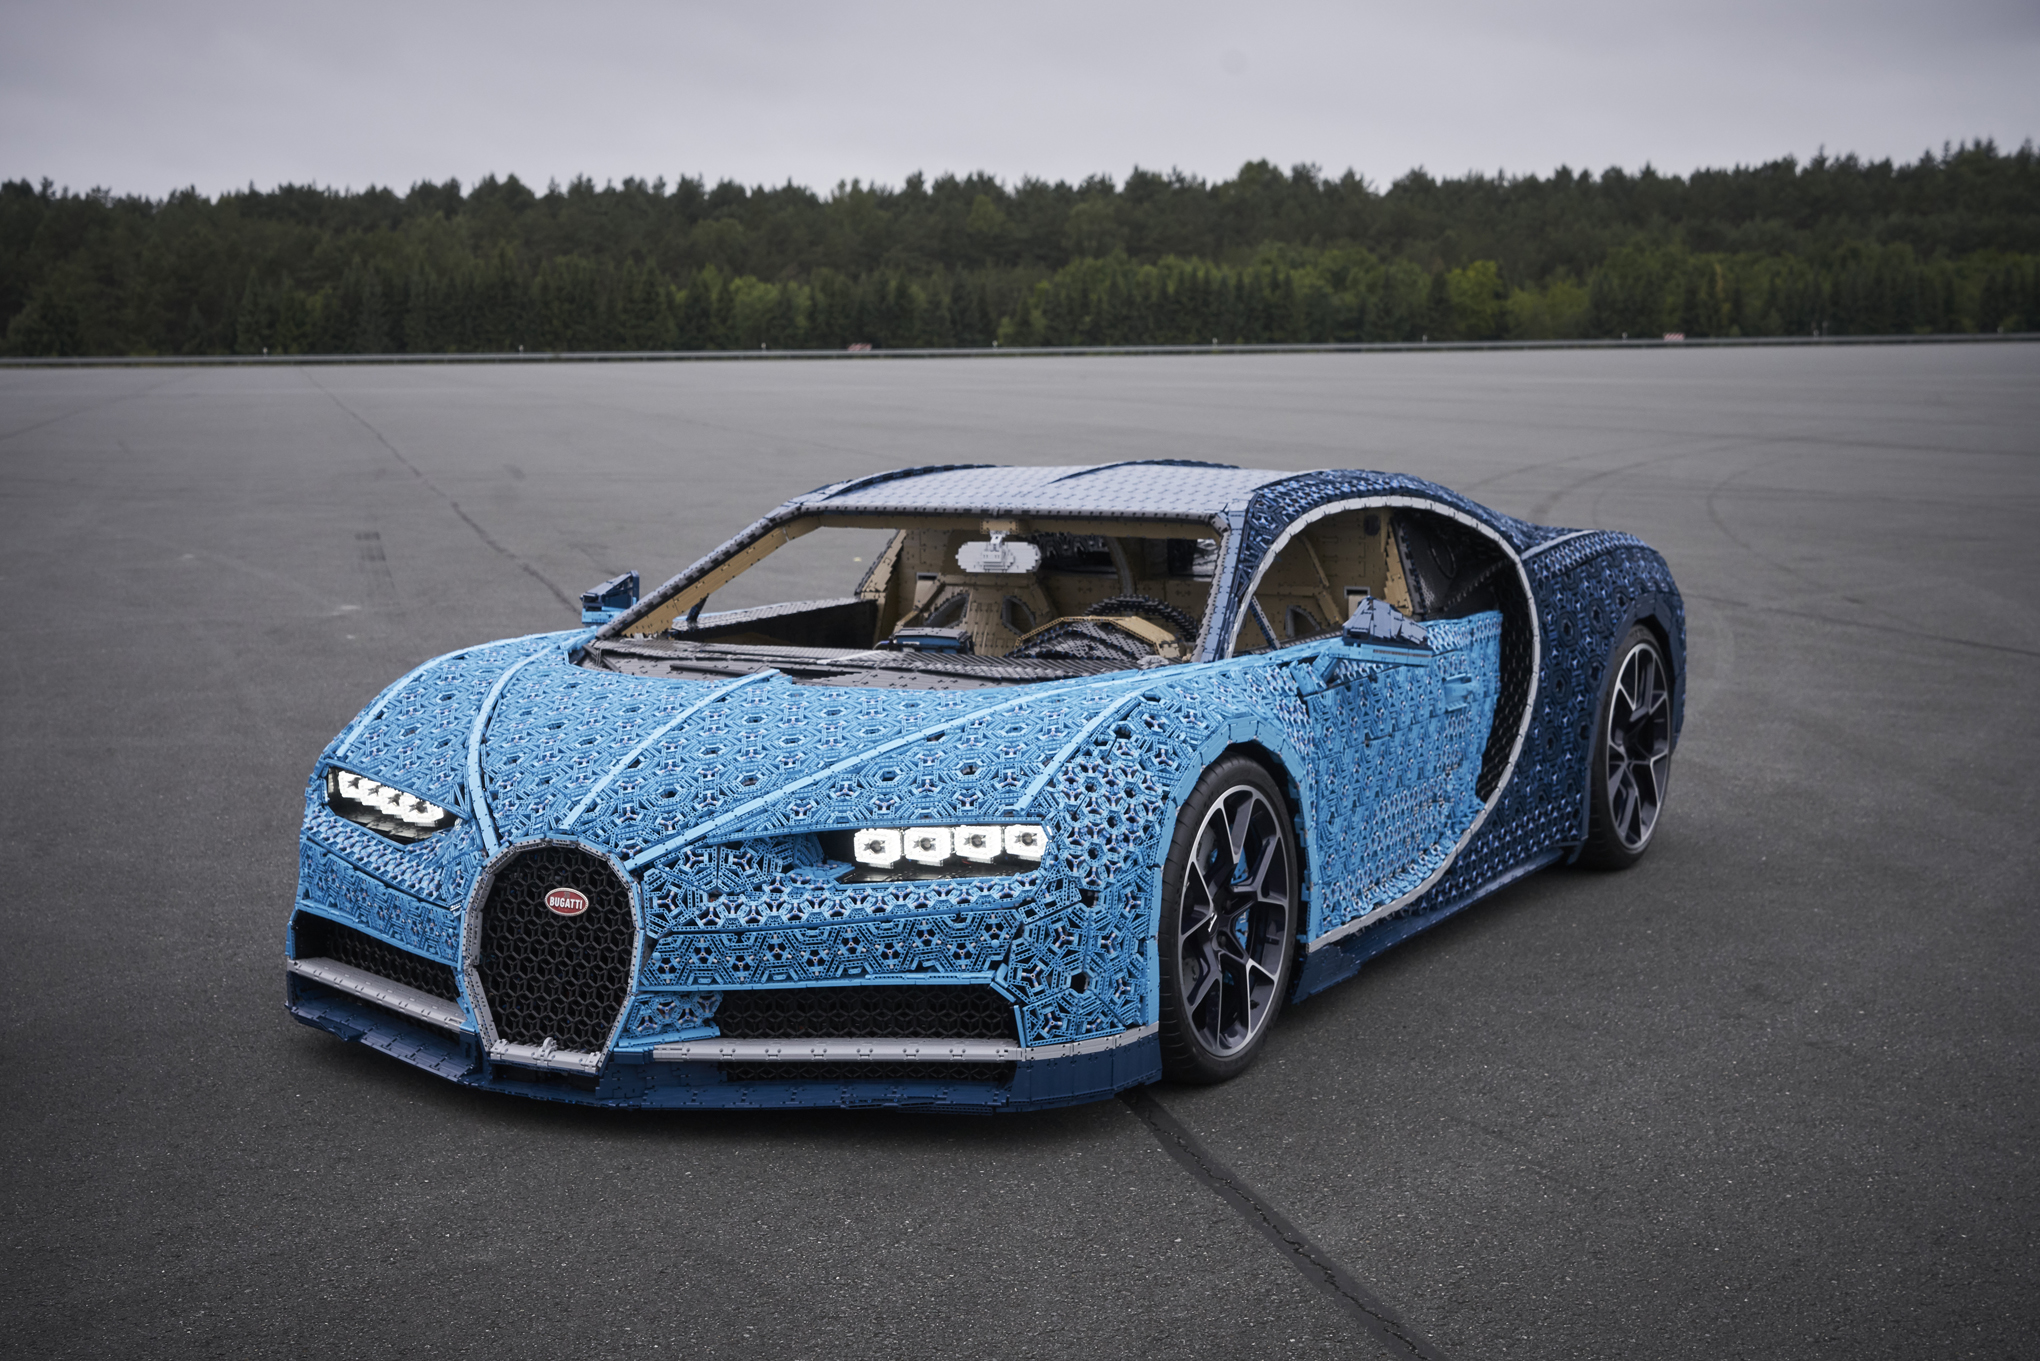 lego built a drivable bugatti chiron with over 1 million. Black Bedroom Furniture Sets. Home Design Ideas